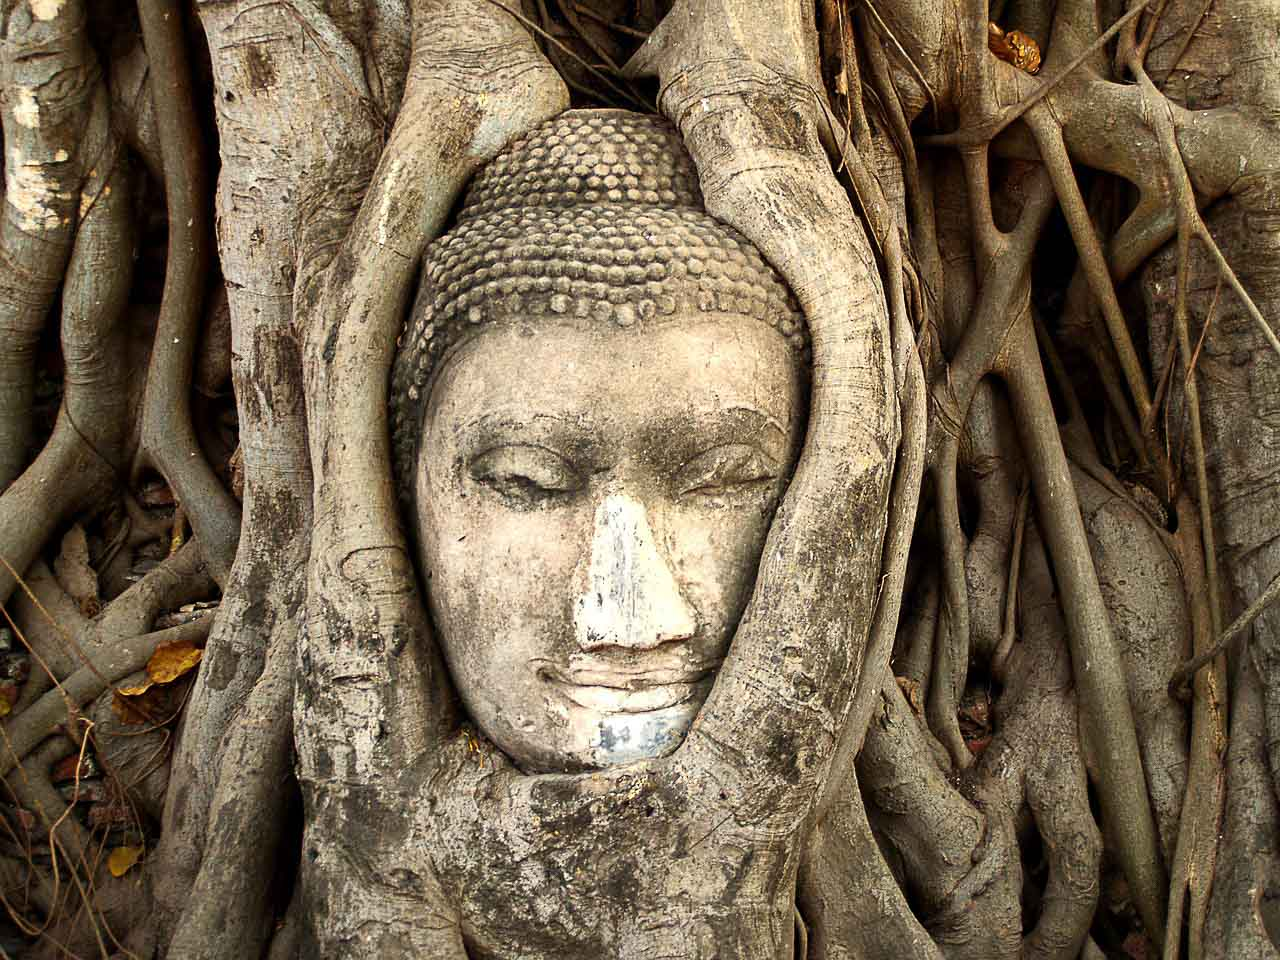 The best day tour to Ayutthaya must have a stop yo see the head of Buddha wrapped in a Bodhi tree.